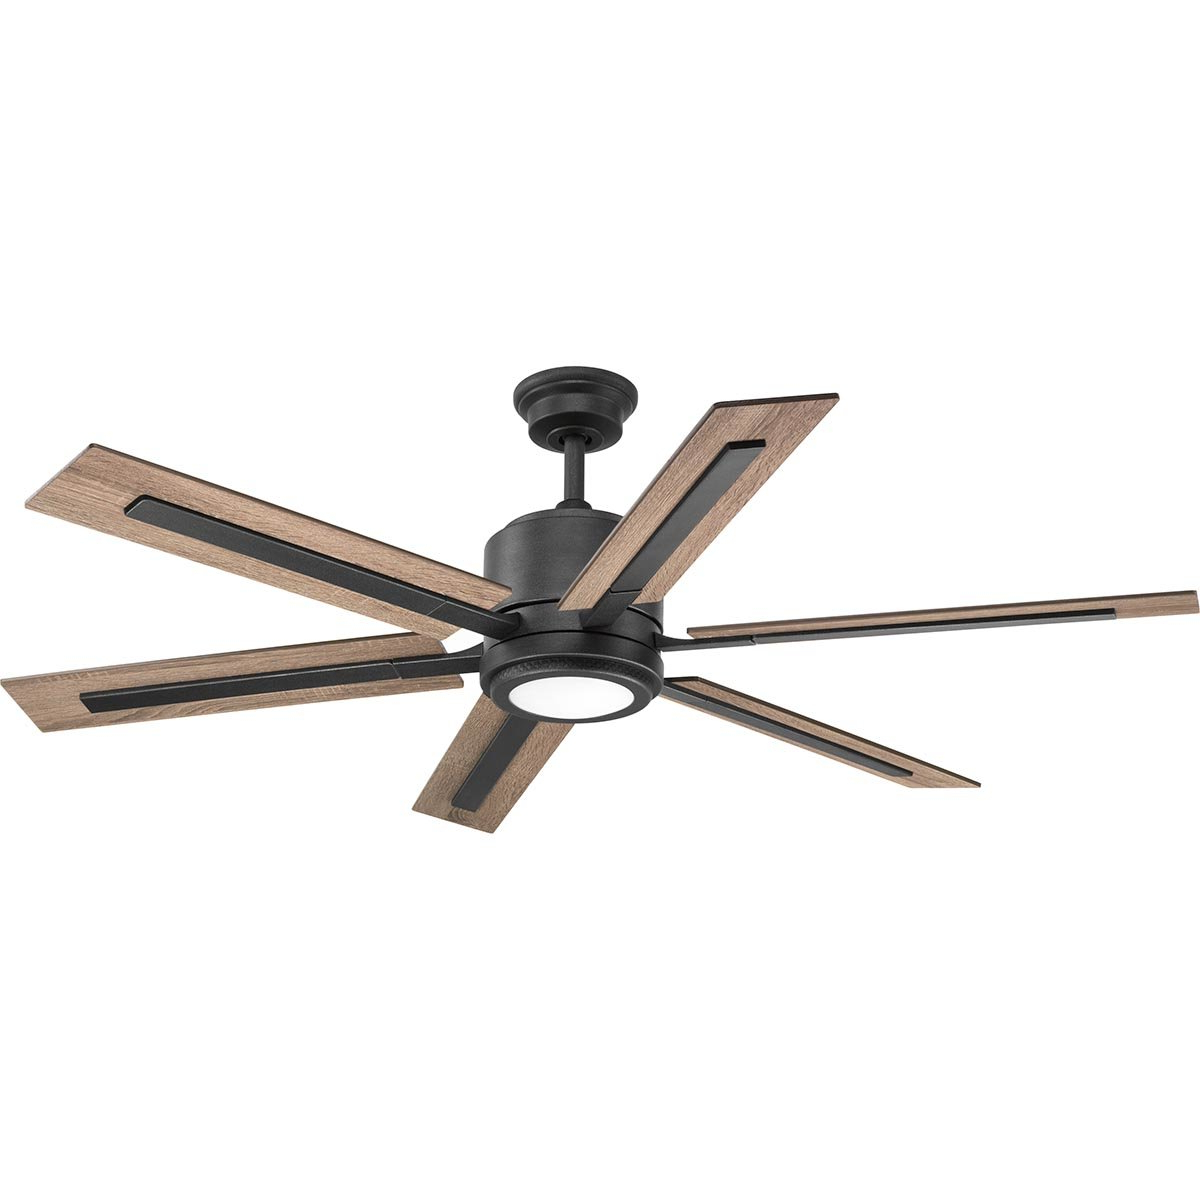 "Cillian 6 Blade Ceiling Fans Throughout Well Known 60"" Lesure 6 Blade Led Ceiling Fan With Remote, Light Kit Included (View 2 of 20)"